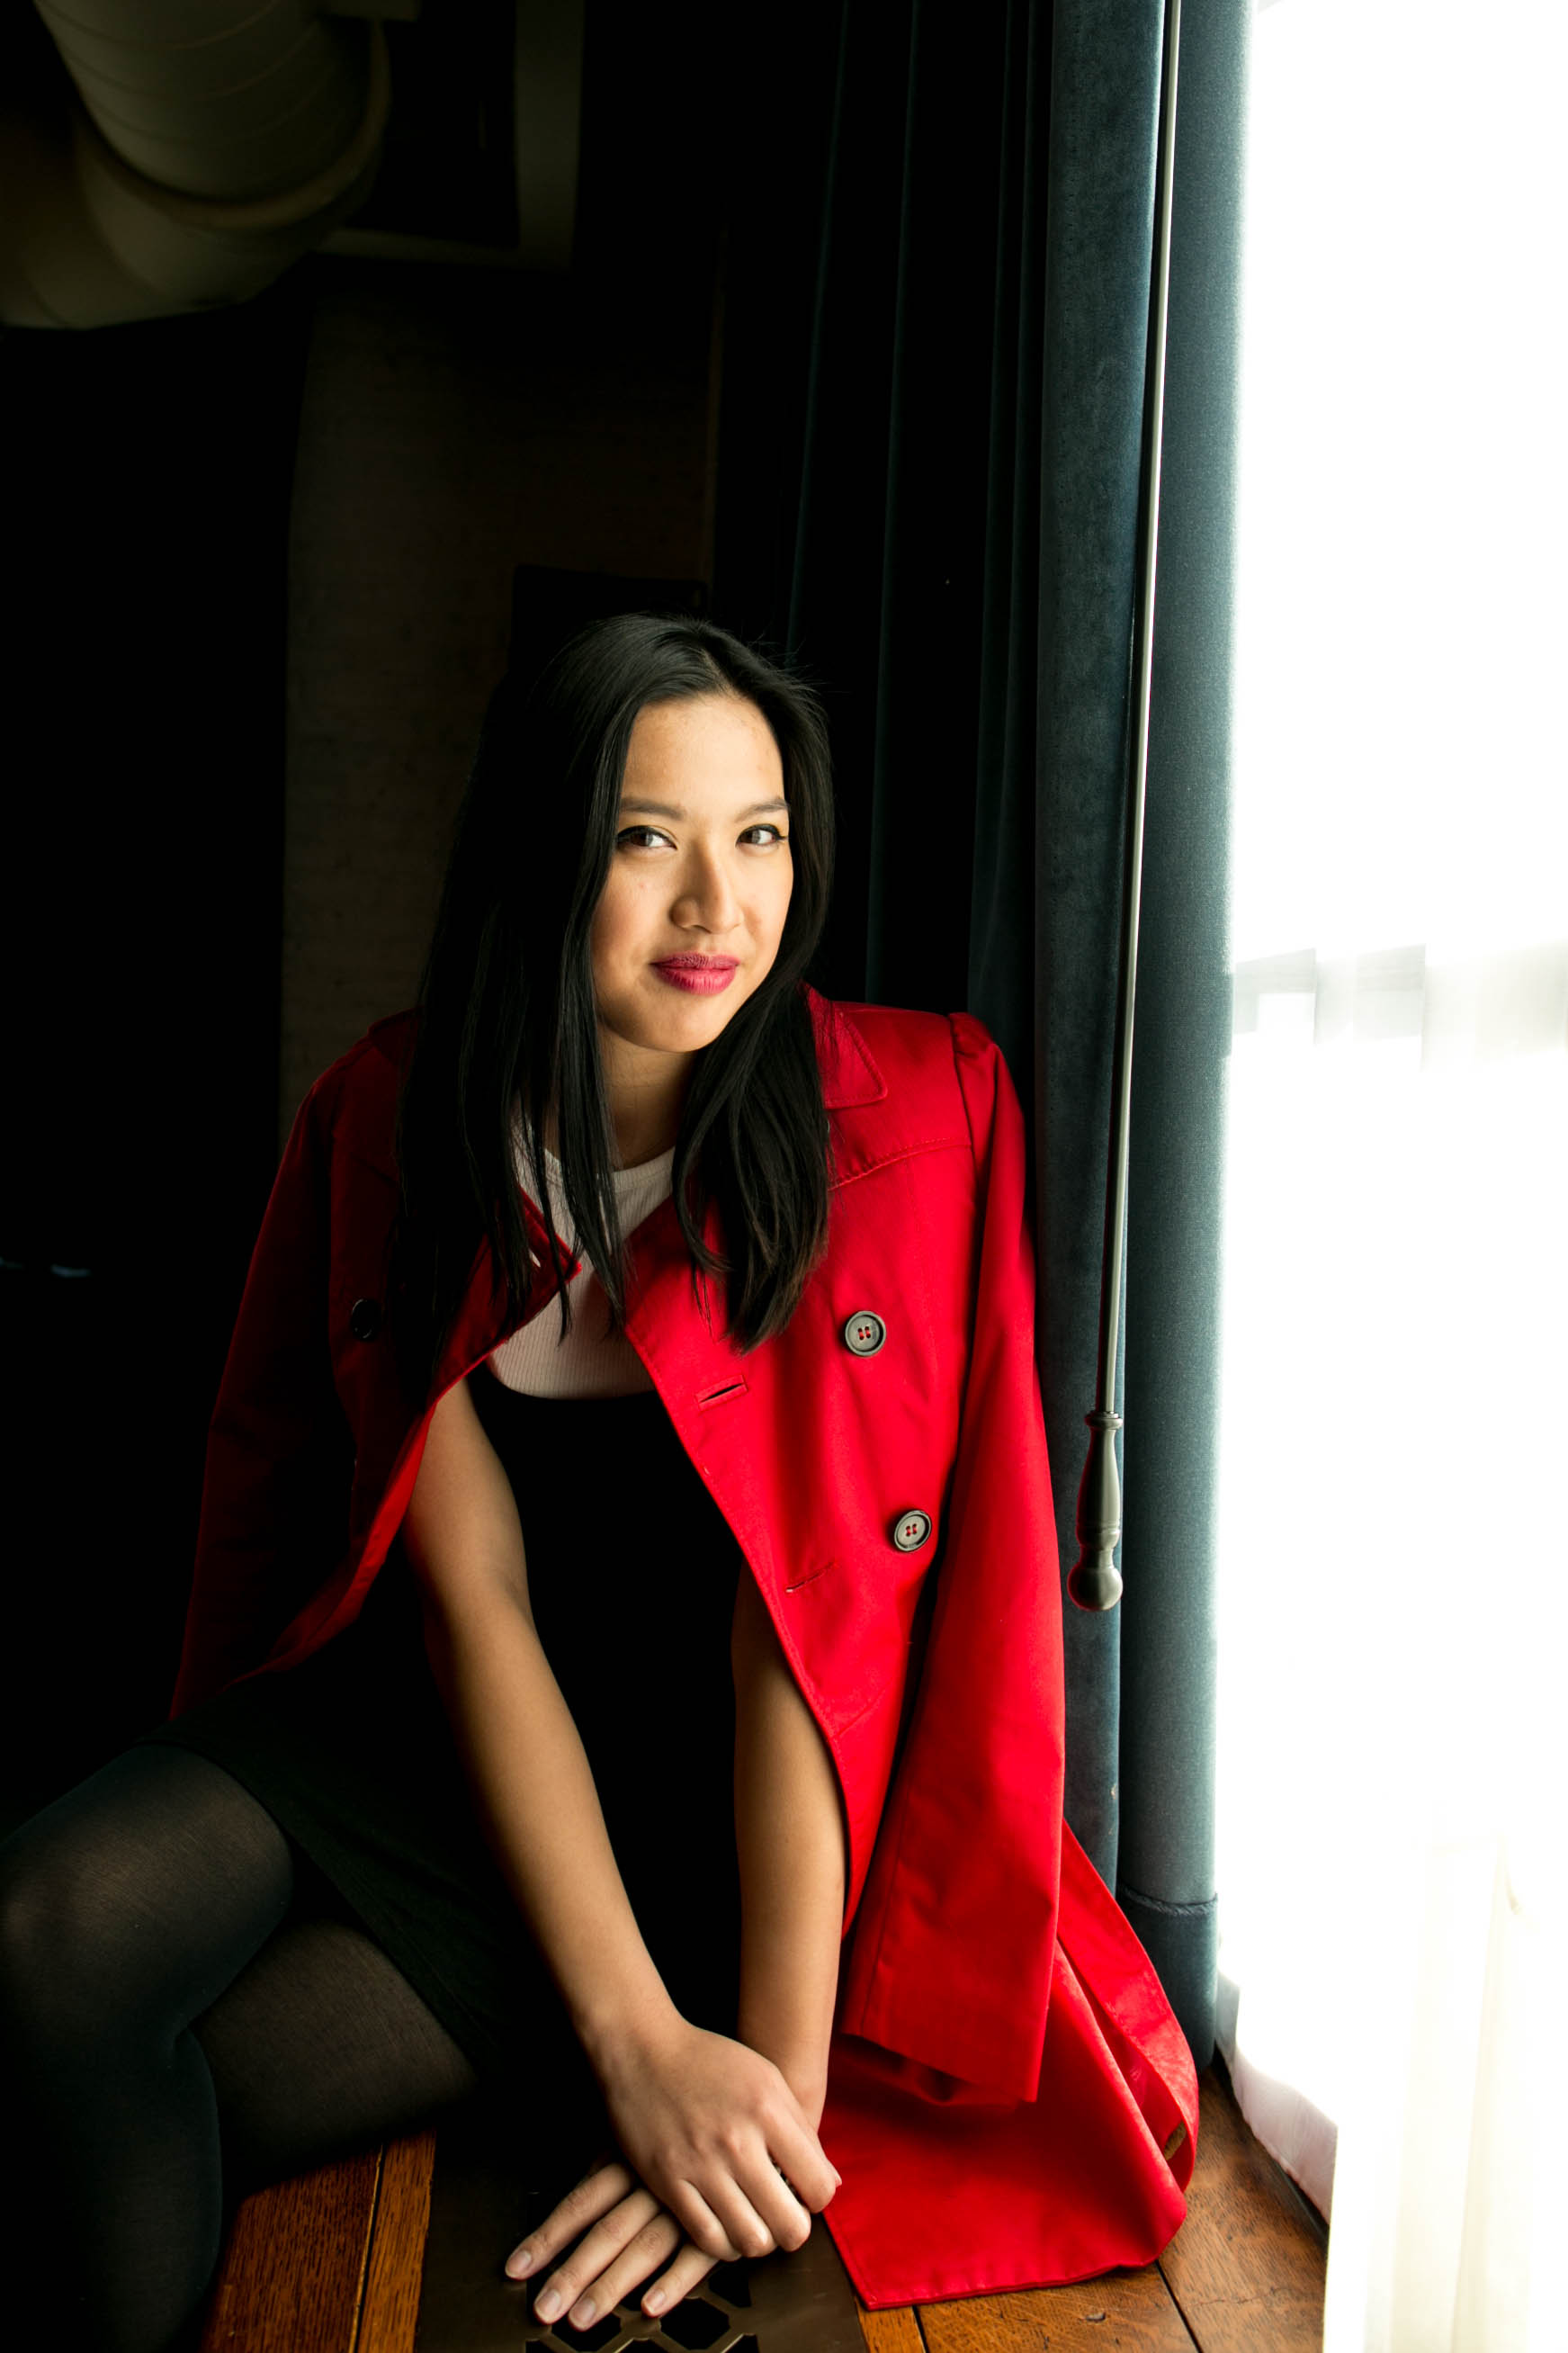 Megan Mateo: Marketing maven, visionary, and get sh*t done kind of gal.